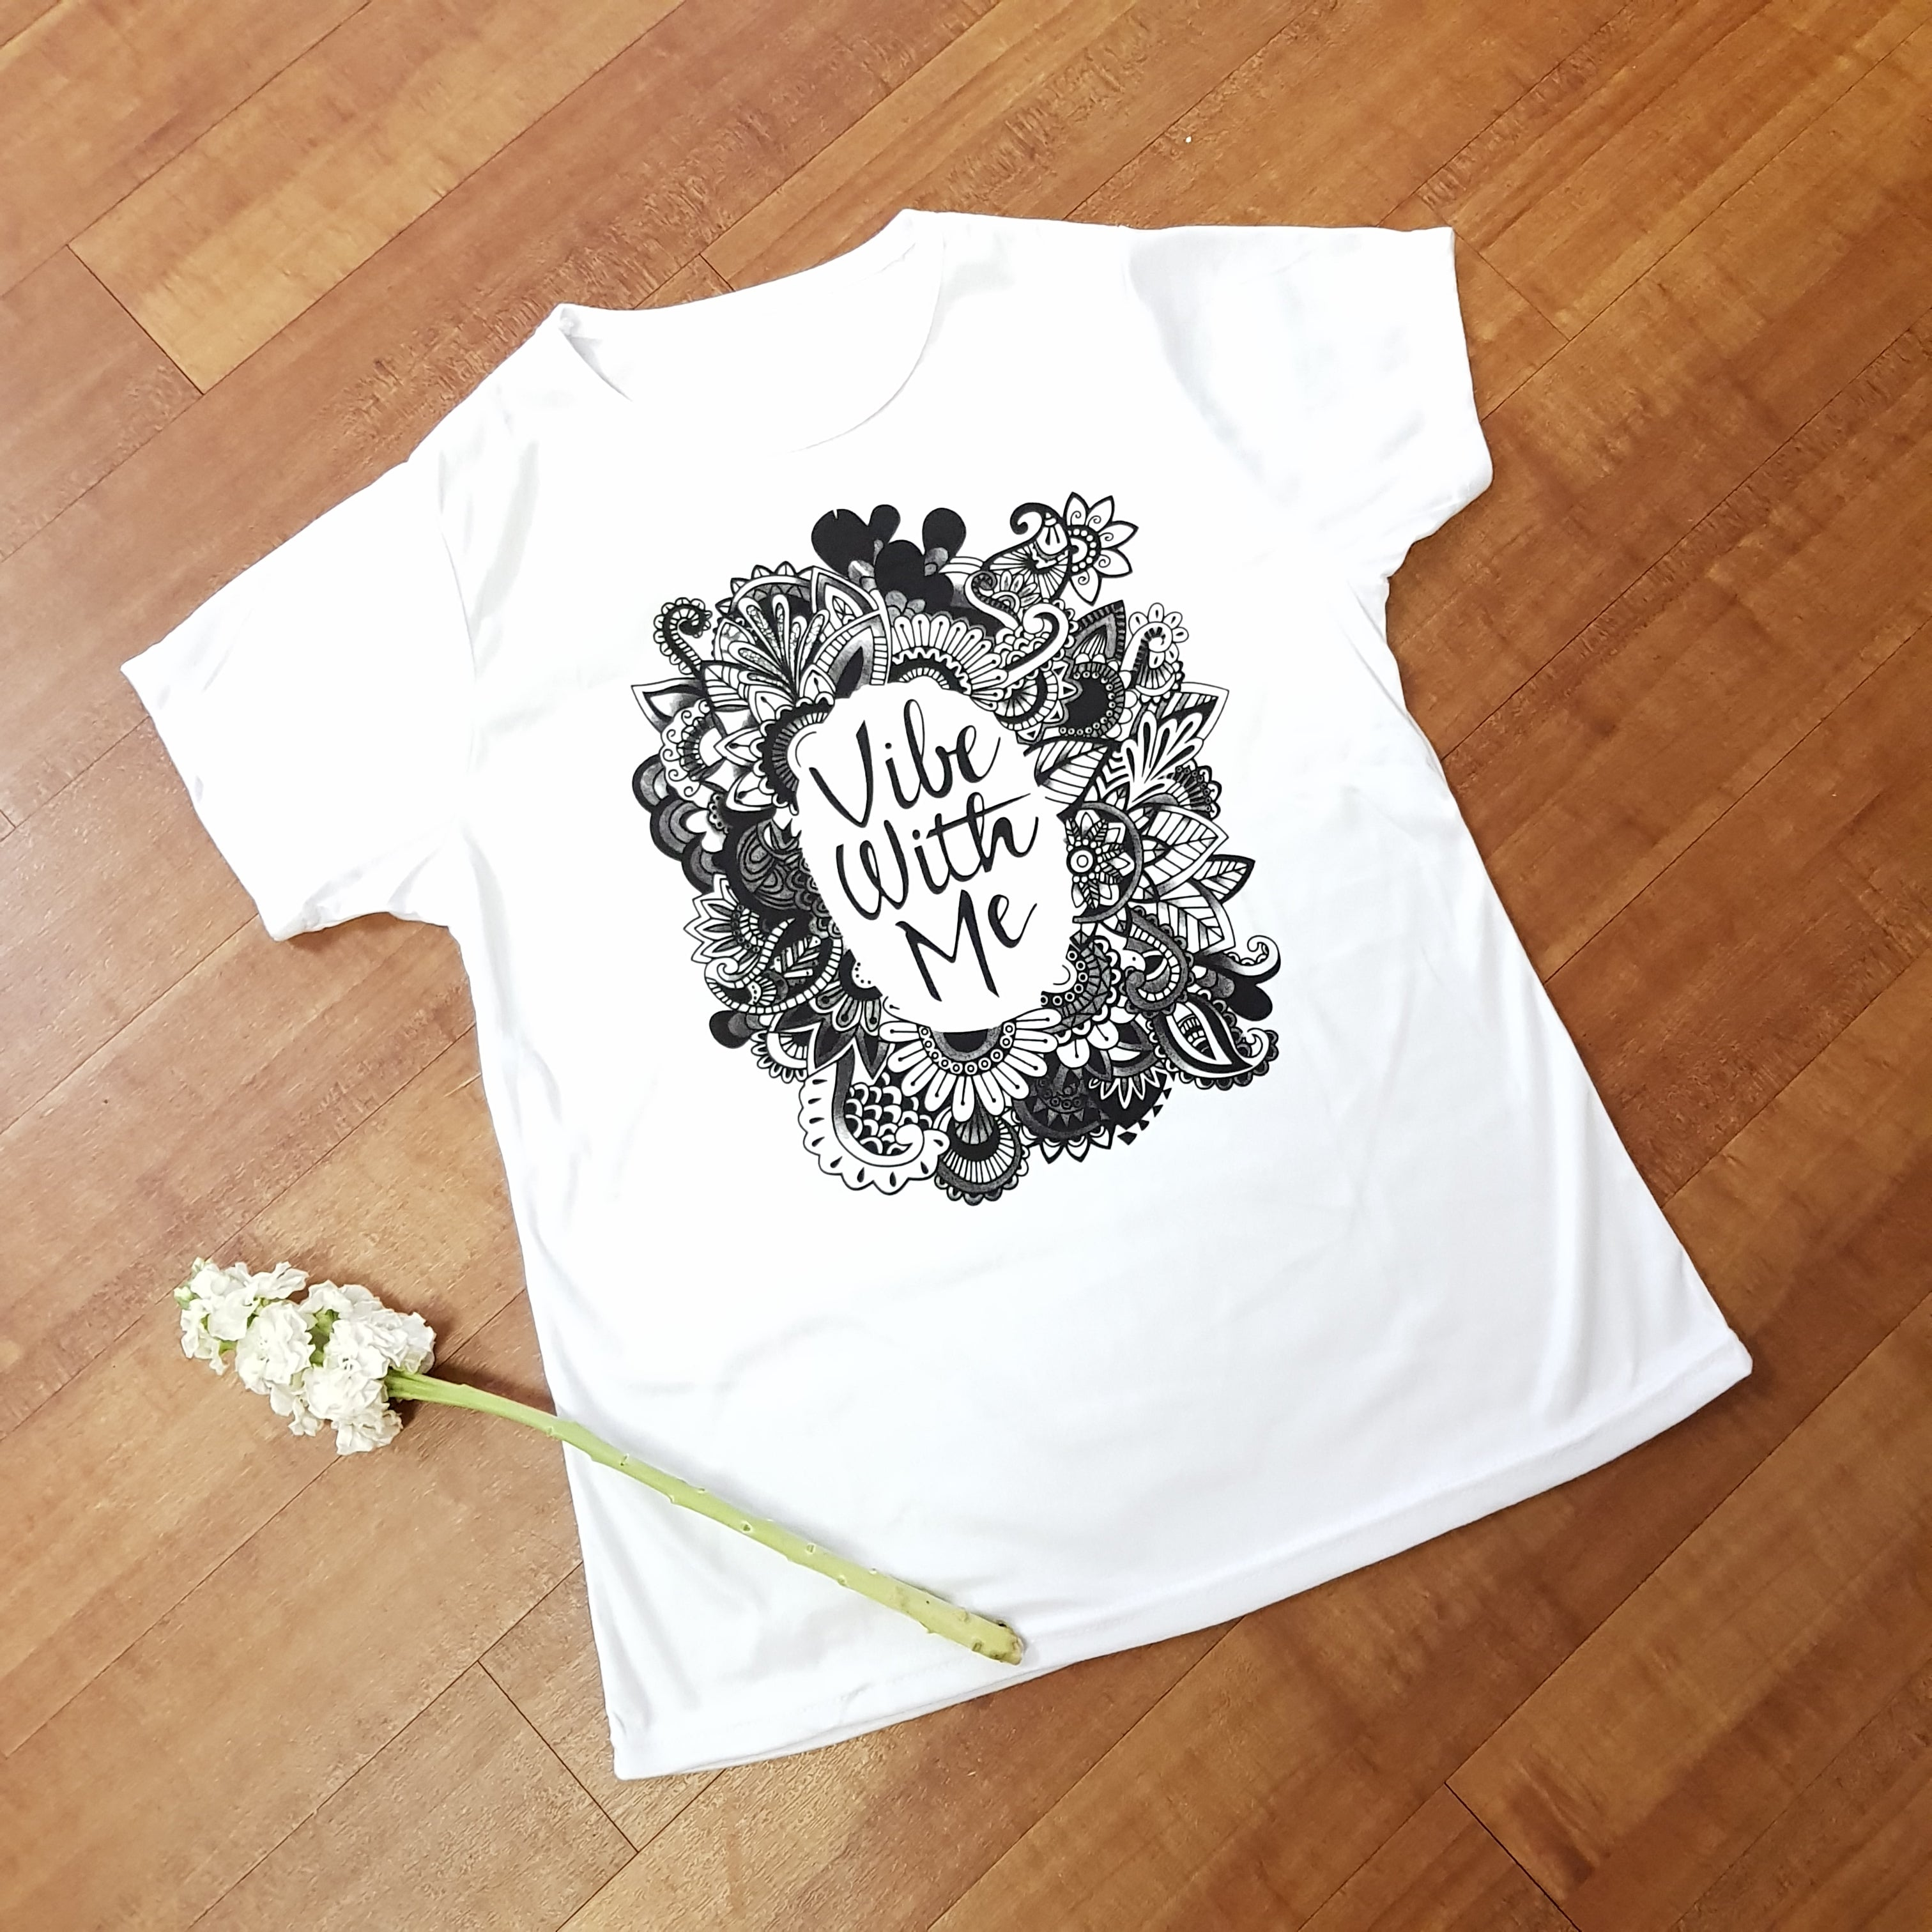 Reduced To Clear - Vibe With Me T-Shirt - JBD